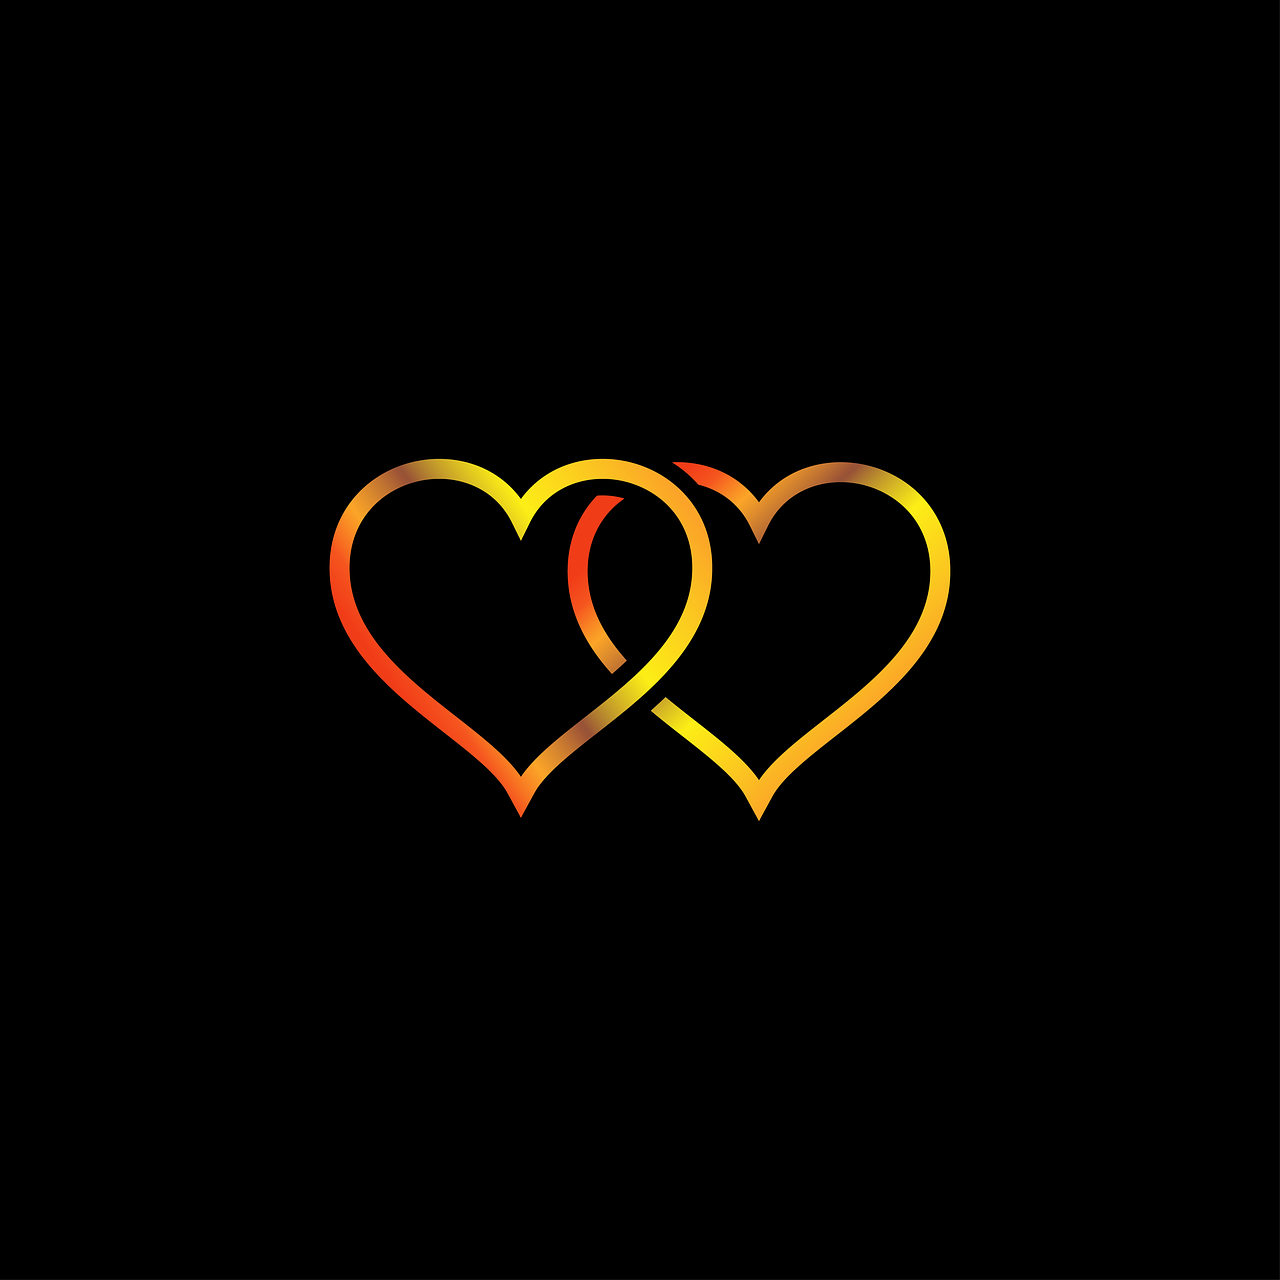 Vacation Heart Gold Black Background Love vacation heart